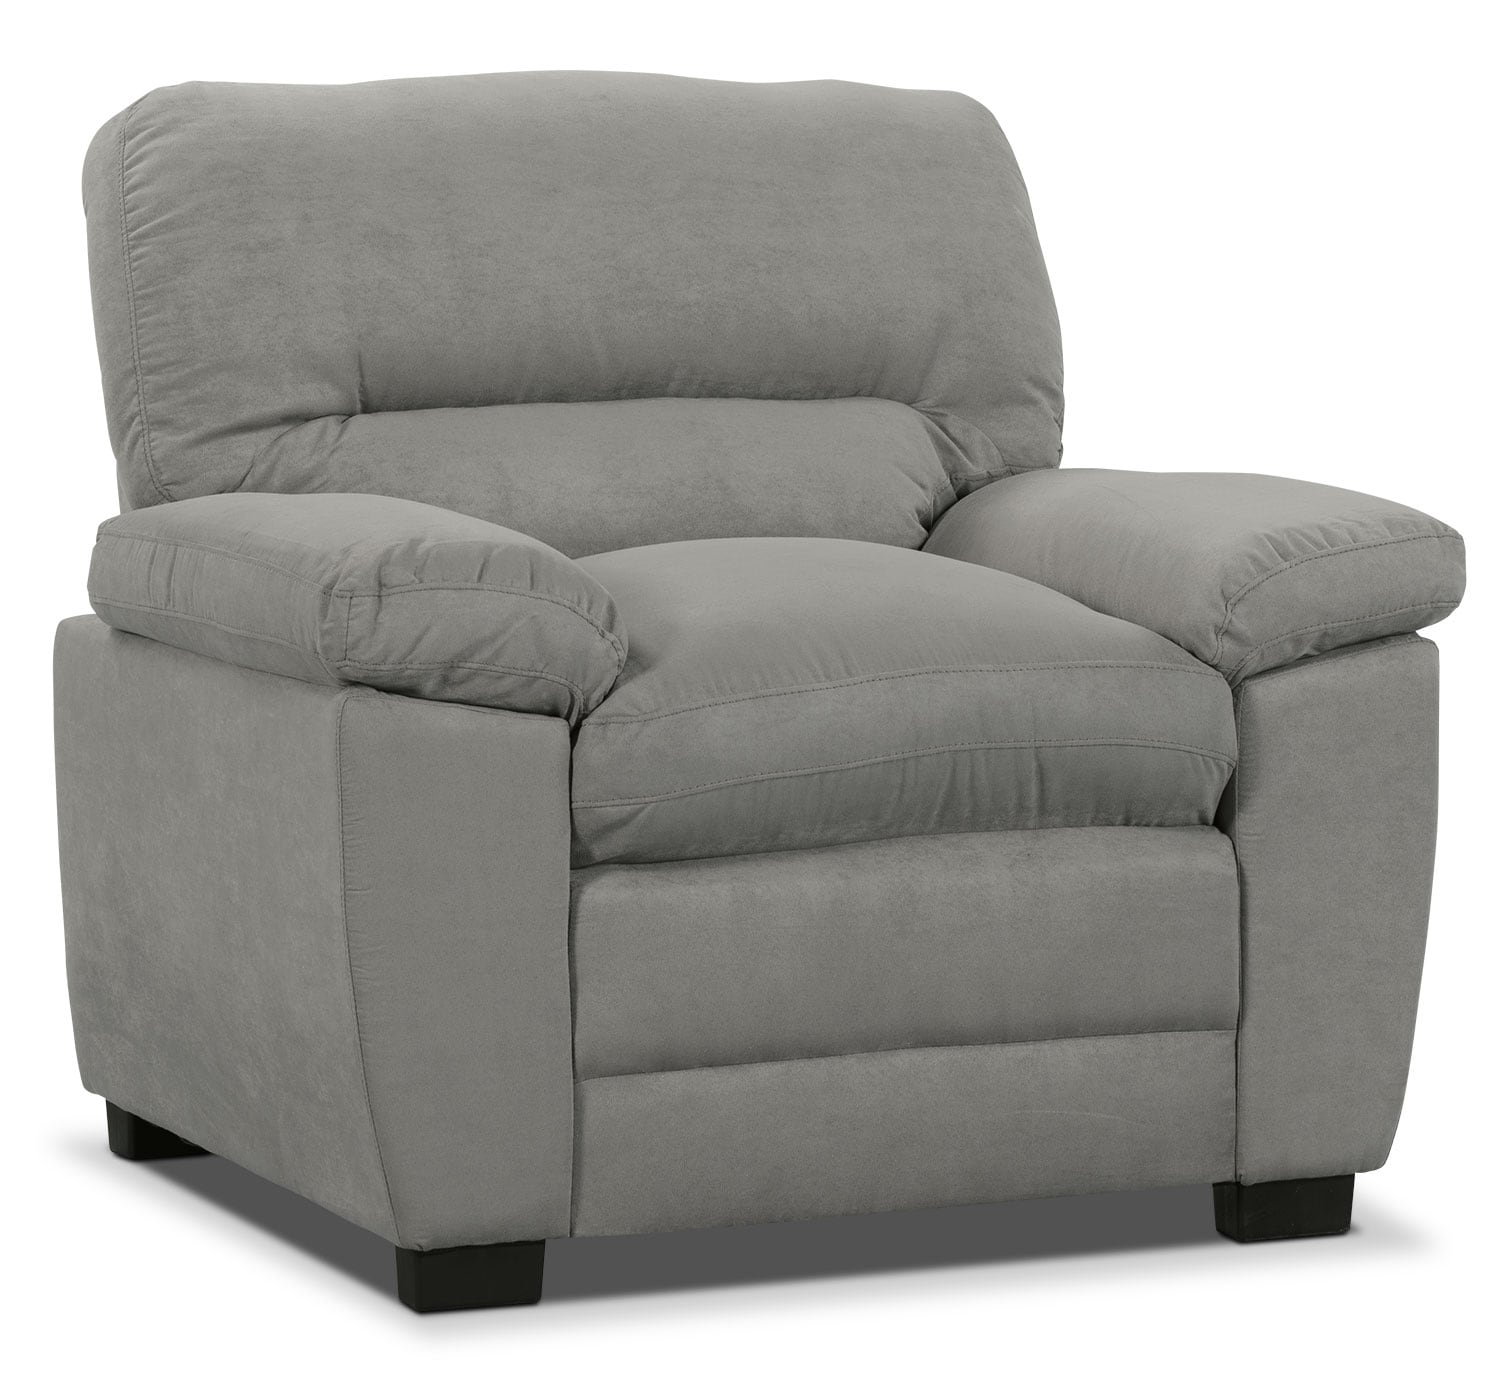 Living Room Furniture - Peyton Microsuede Chair - Grey